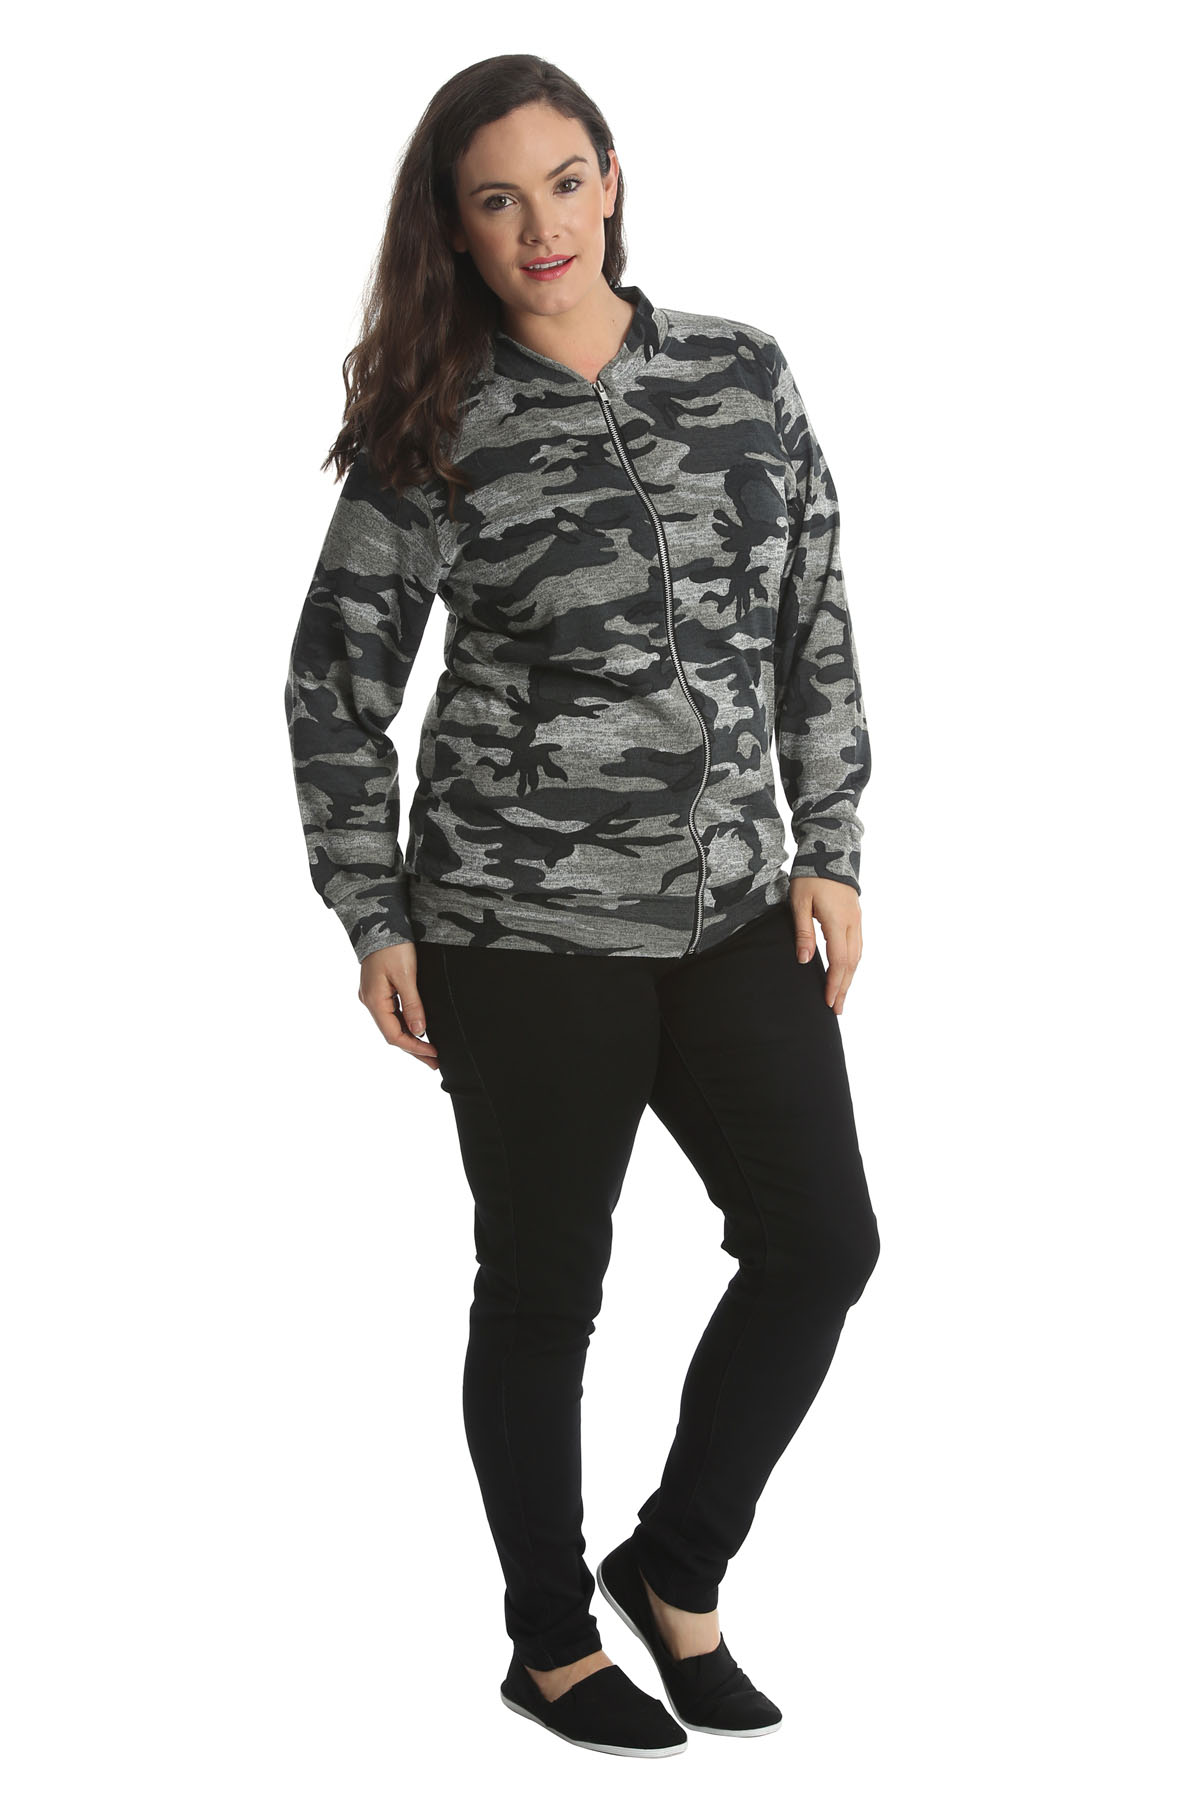 Carol Wright has a wide selection of Women's Clothing including Dresses, Blouses, Sets and More. SHOP NOW AND SAVE! Request Catalog Plus Size Fashion. Plus Size Bras Plus Size Coats Plus Size Dresses Remove Womens Clothing Clear All. Sub Category. Bras (29) Caftans (5) Dresses & Sets (63) Fashion.